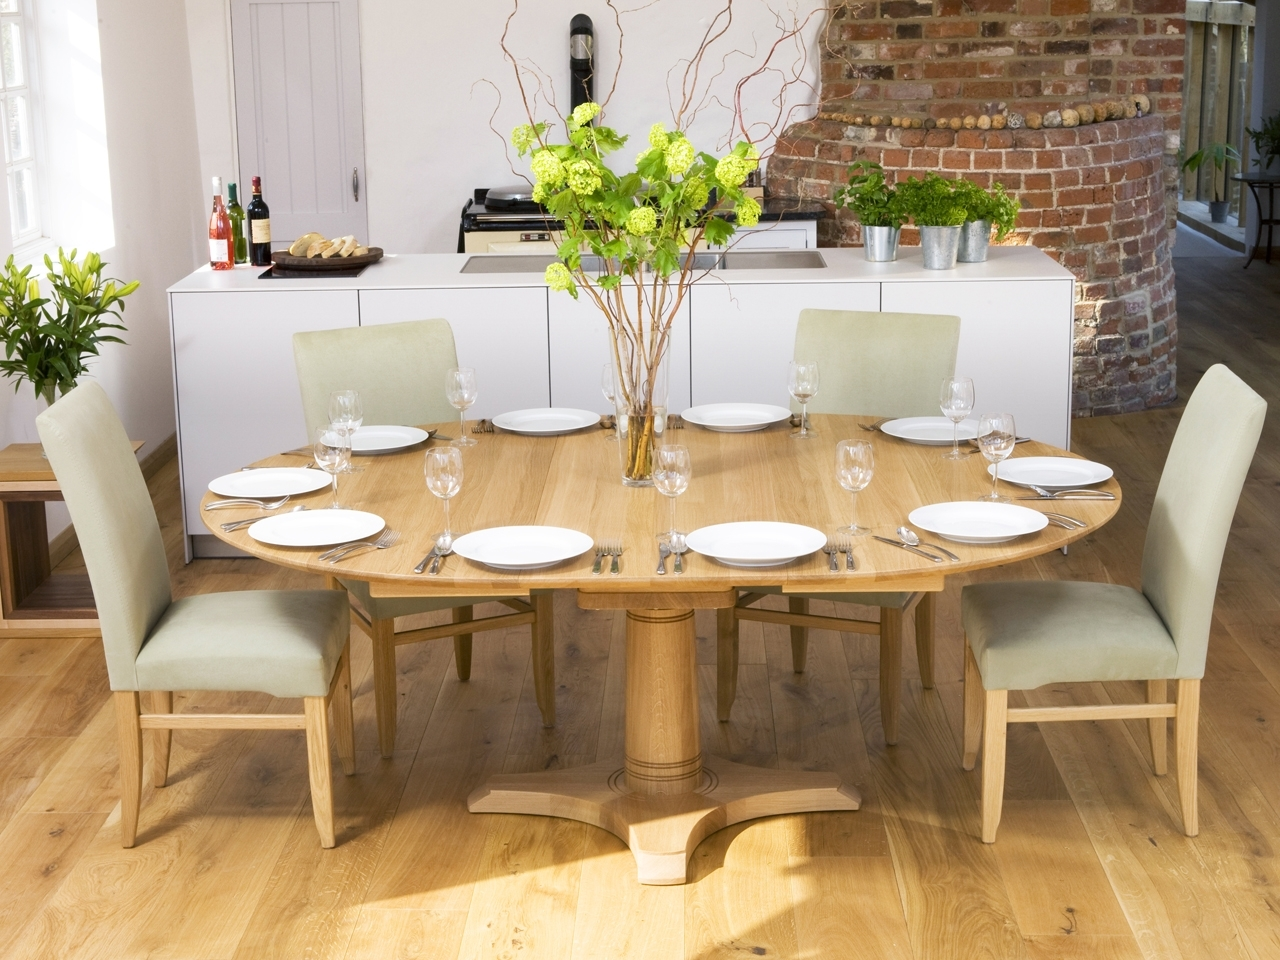 Berrydesign And The Ideal Home Show With Regard To Most Up To Date Extending Round Dining Tables (View 16 of 25)